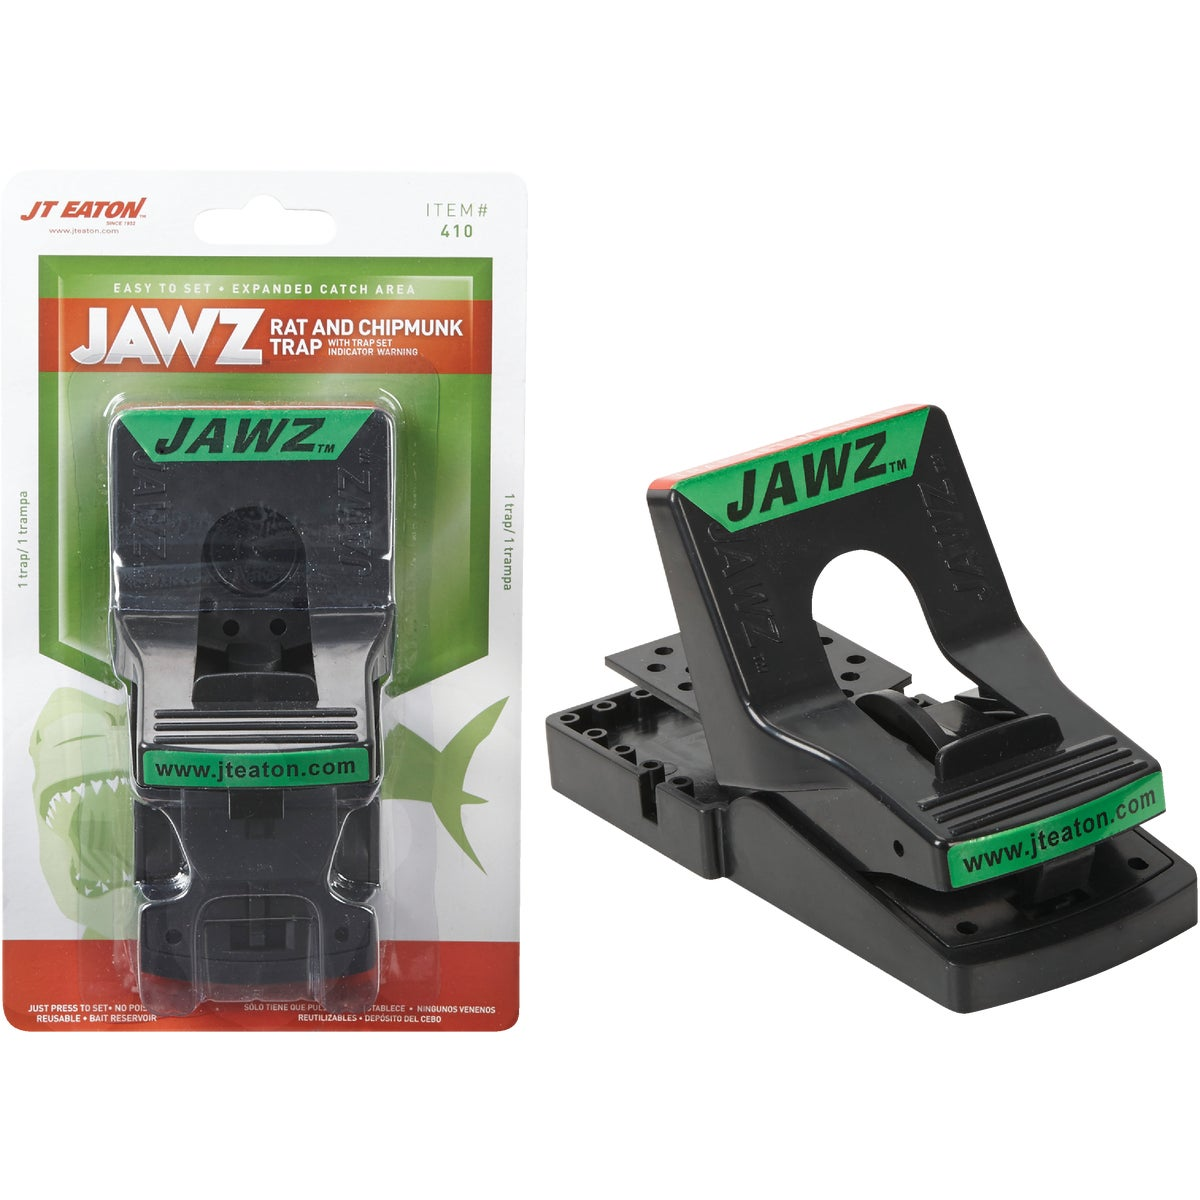 1PK JAWZ RAT TRAP - 410 by Jt Eaton & Co